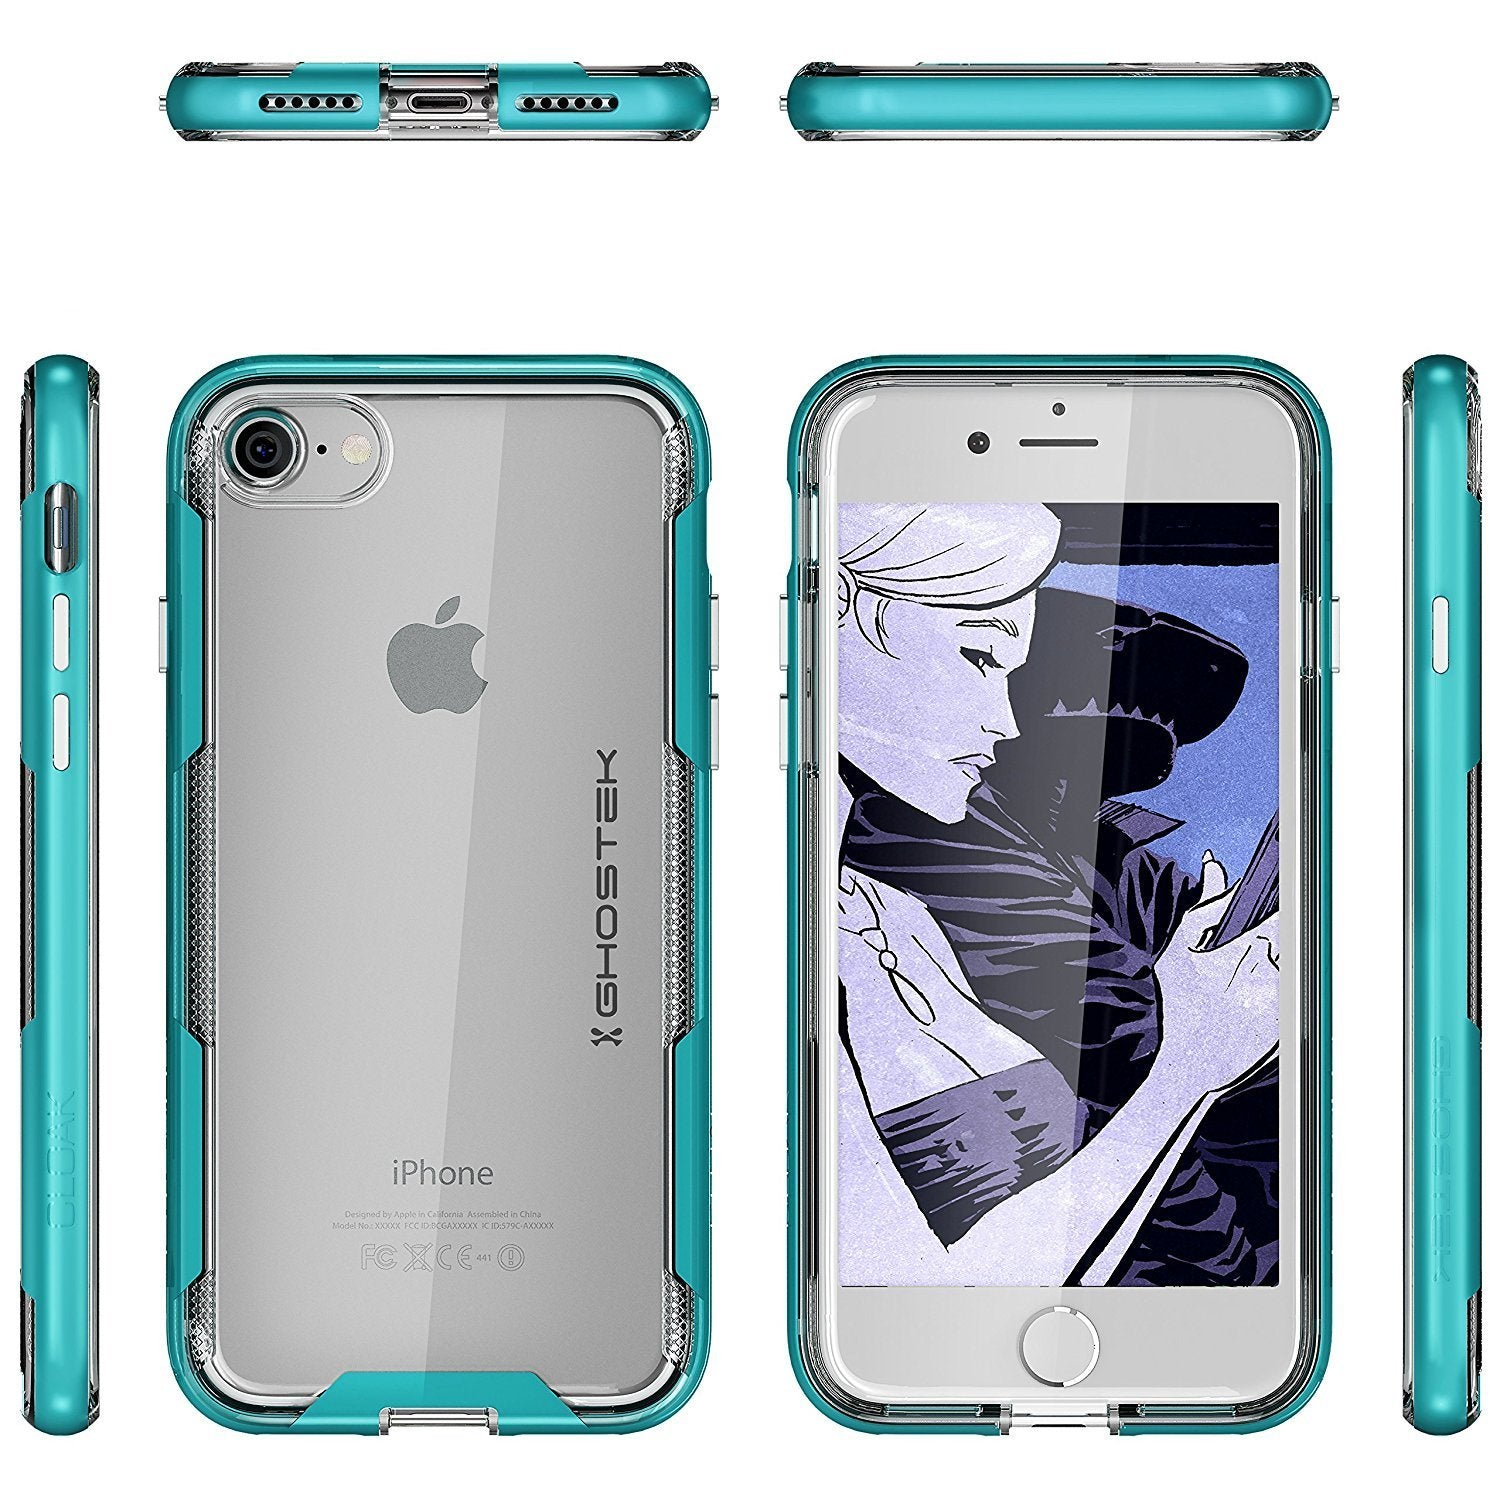 iPhone 8 Case, Ghostek Cloak 3 Series Case for iPhone 8 Case Clear Protective Case [TEAL] - PunkCase NZ